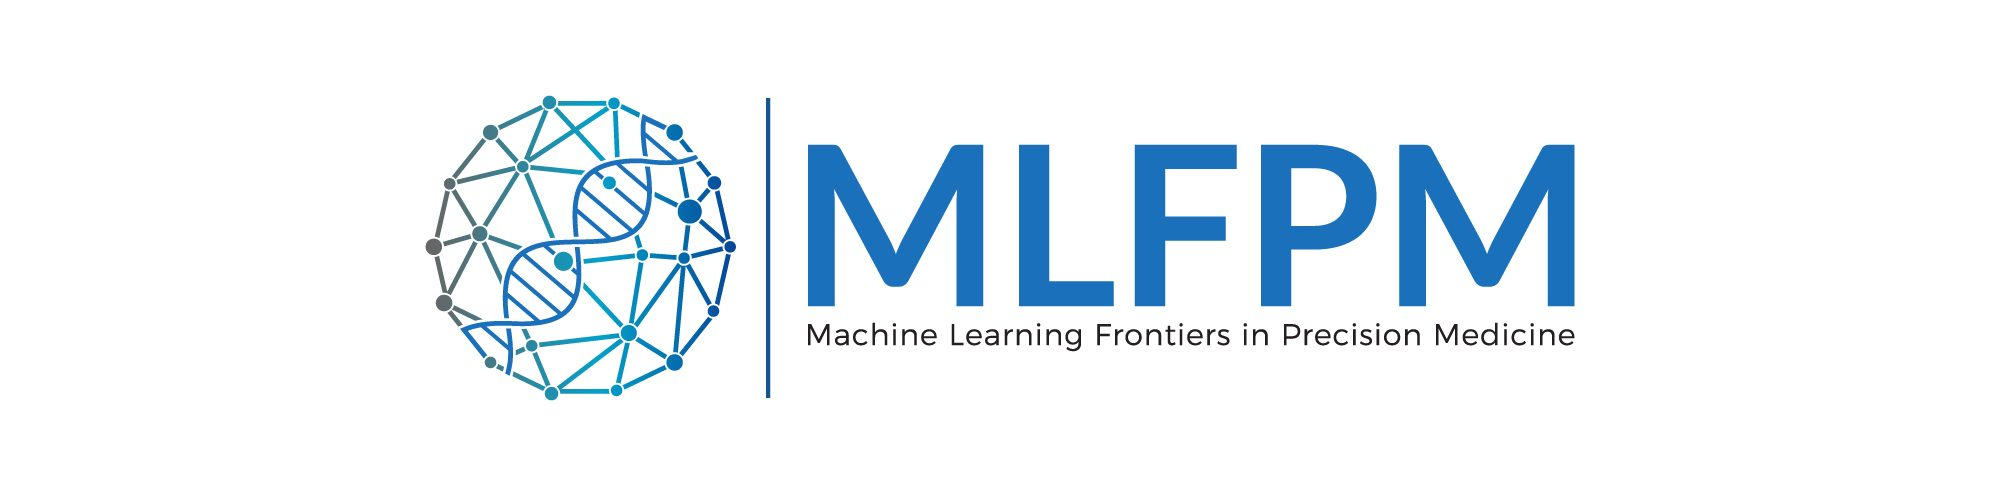 Machine Learning Frontiers in Precision Medicine